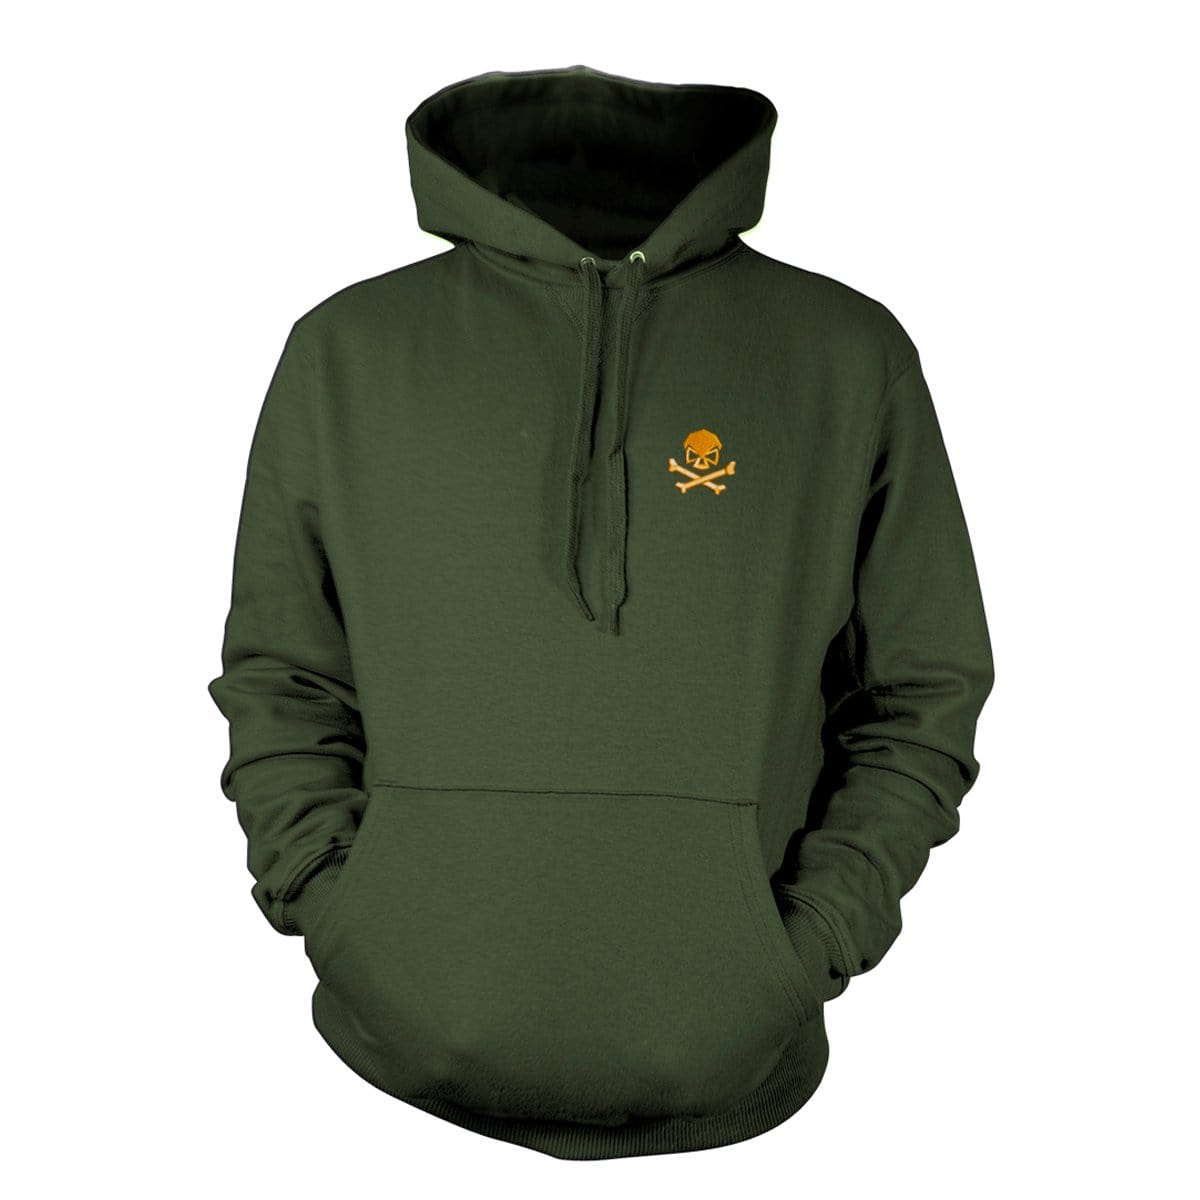 Skull & Bones Hoodie (Embroidered) - Military Green/Orange - Hoodies - Pipe Hitters Union